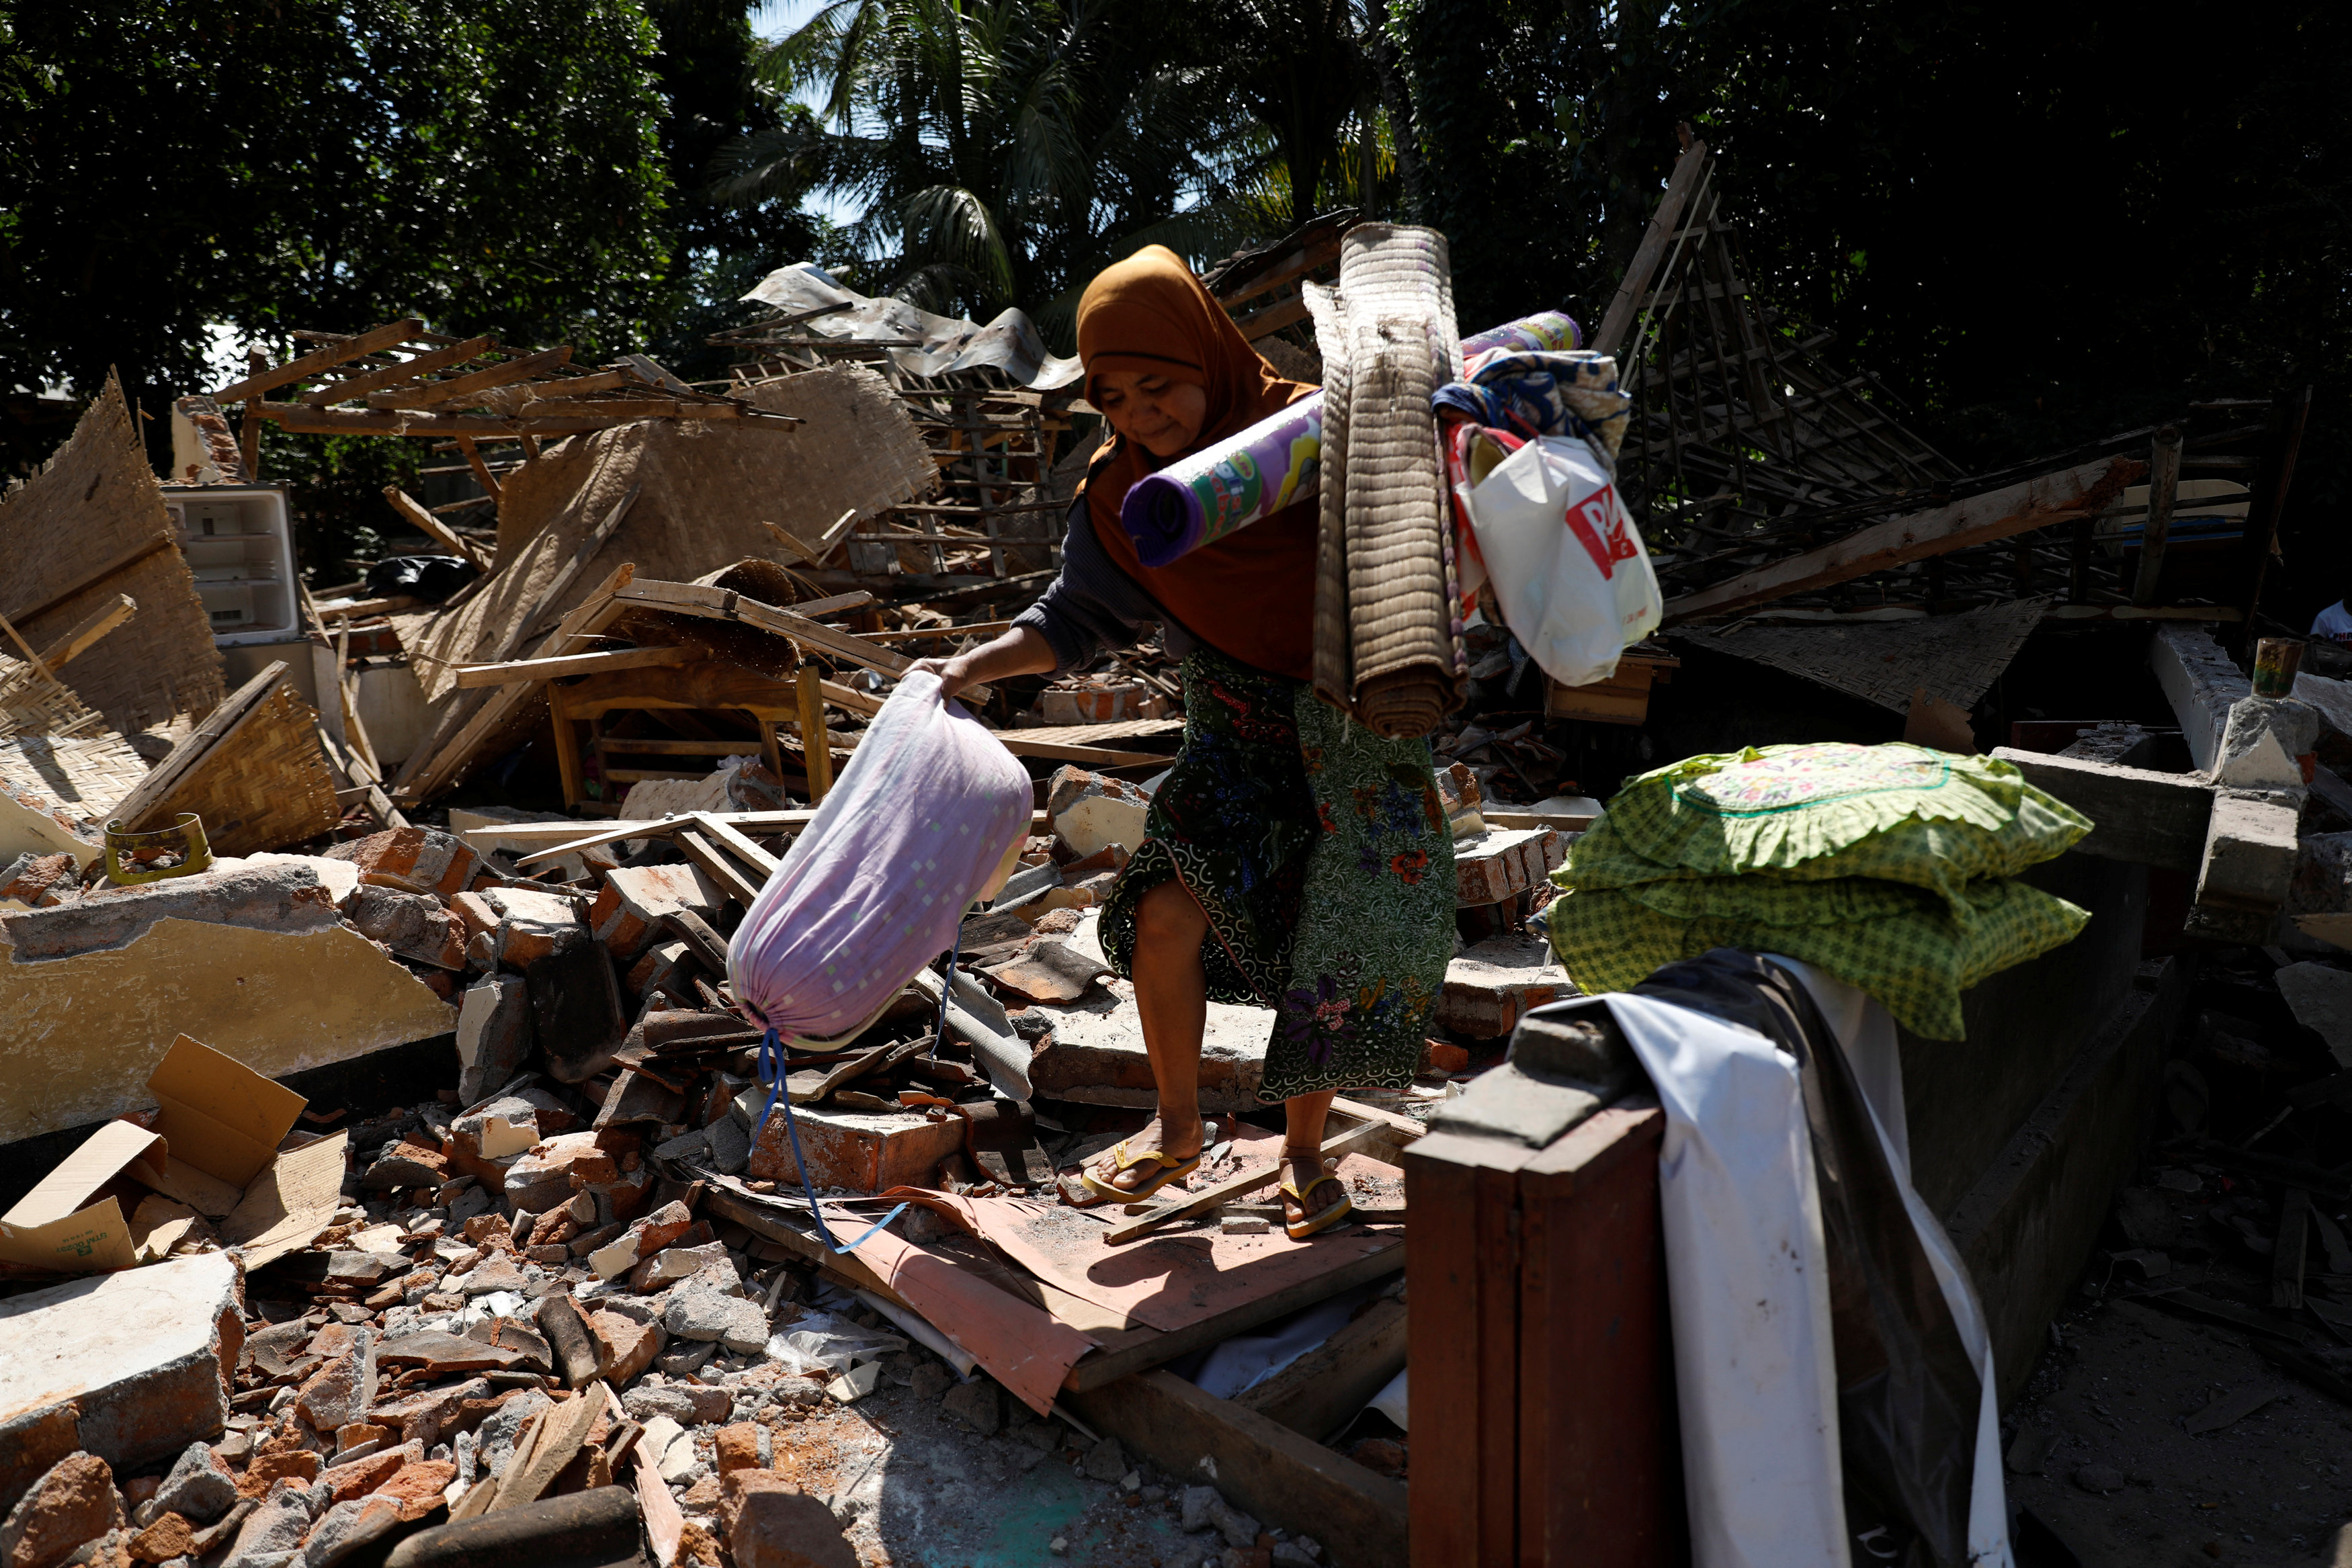 A woman carries valuable goods from the ruins of her house at Kayangan district after earthquake hit on Sunday in North Lombok, Indonesia, August 7, 2018. REUTERS/Beawihar